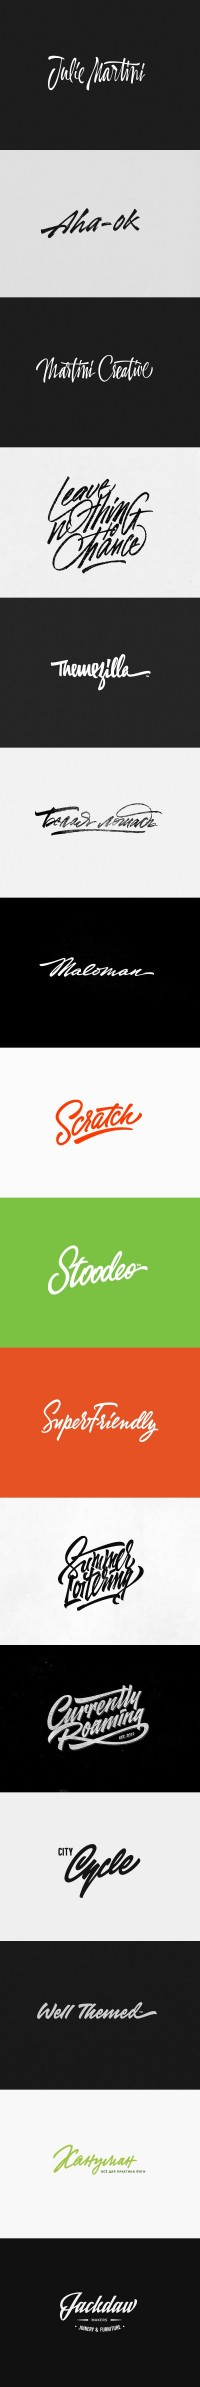 Recent logos and t-shirt letterings